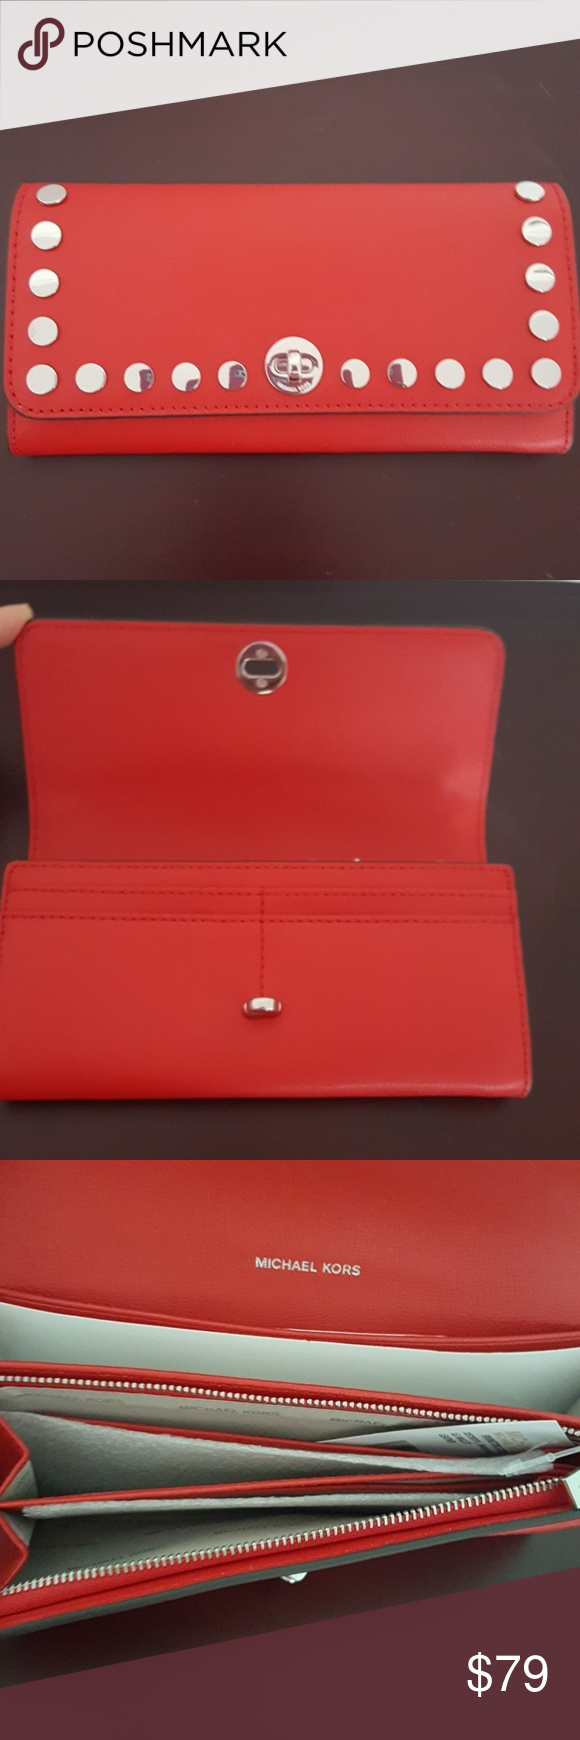 61b0752ec695 Michael Kors Rivington Stud Large Wallet ✓Authentic ✓New with tag ✓Derby  Luxe Leather